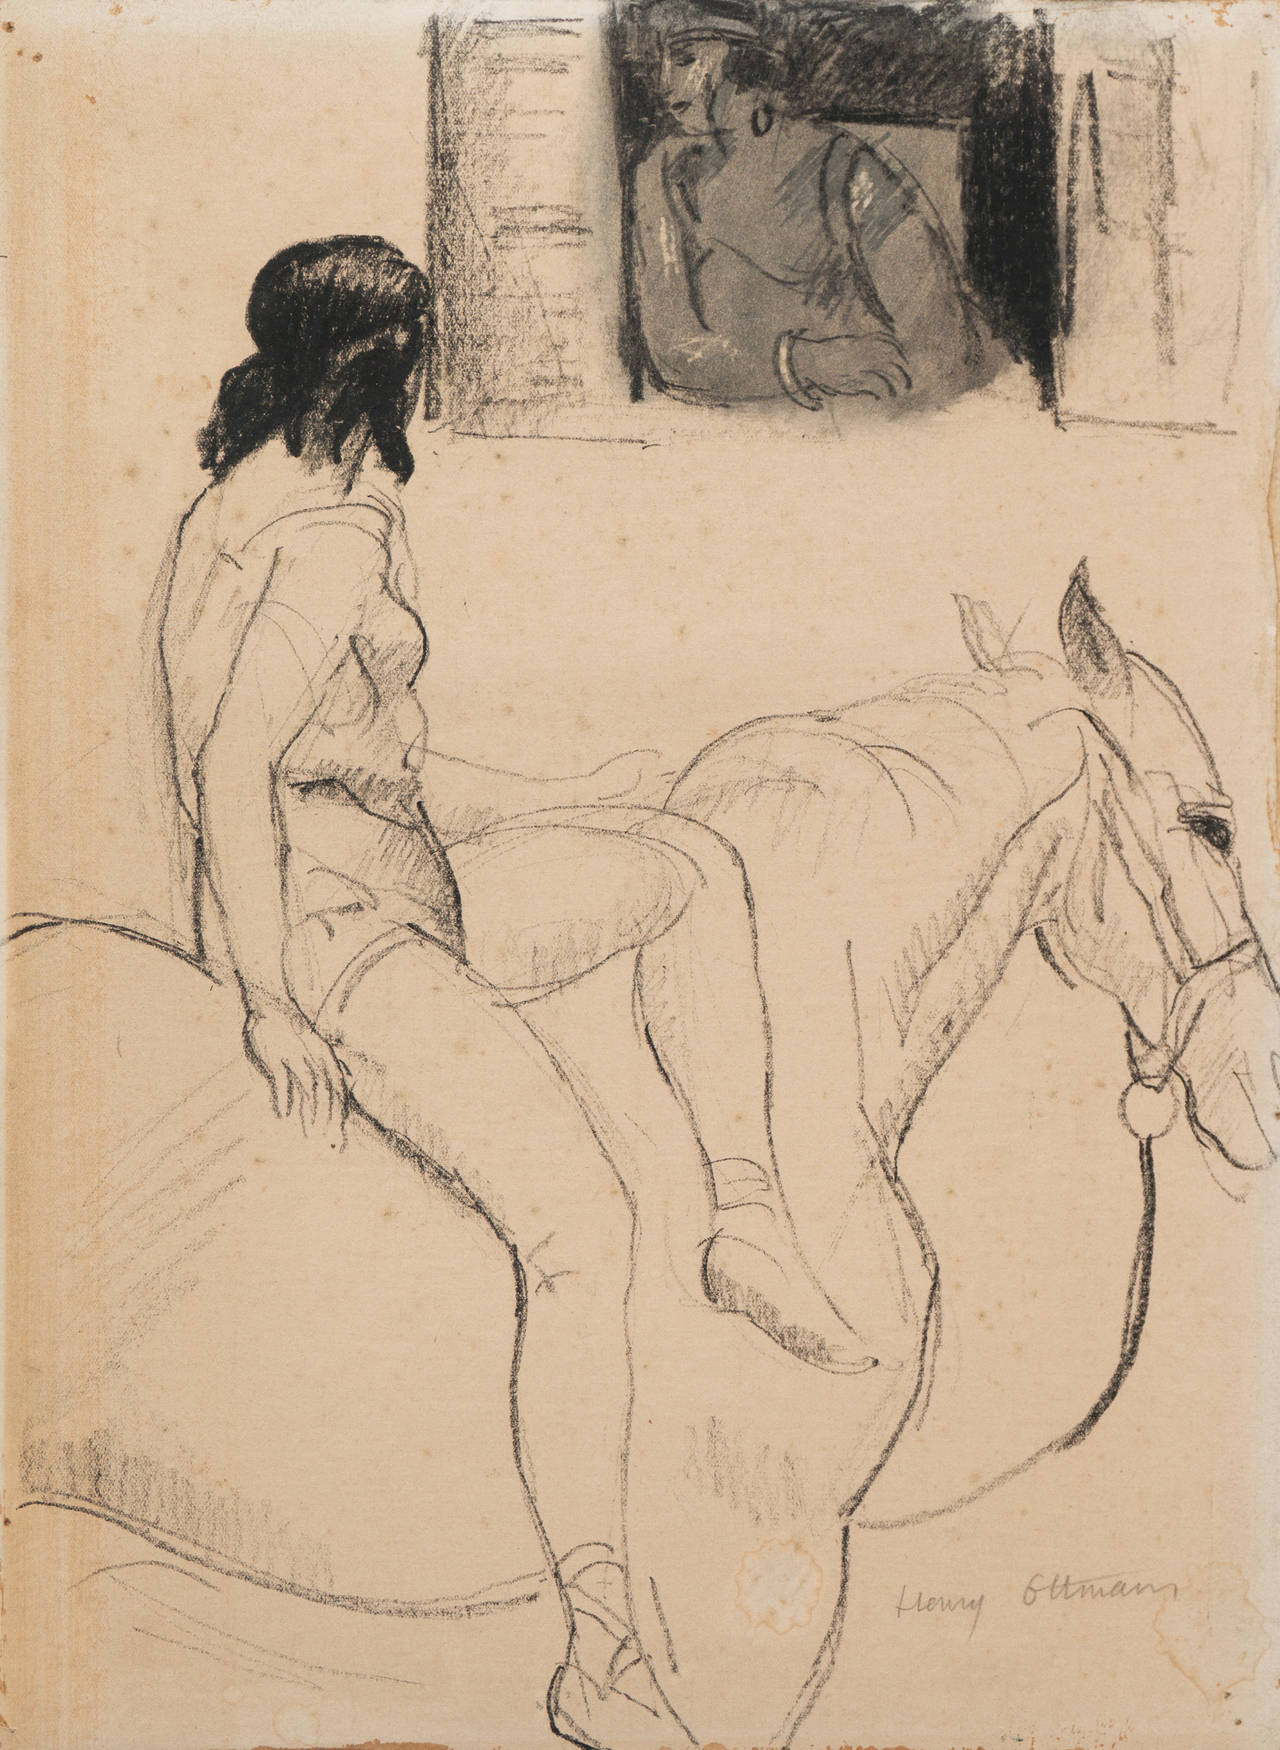 'Entente', Salon d'Automne, French Post-Impressionist Equestrian Figural Drawing